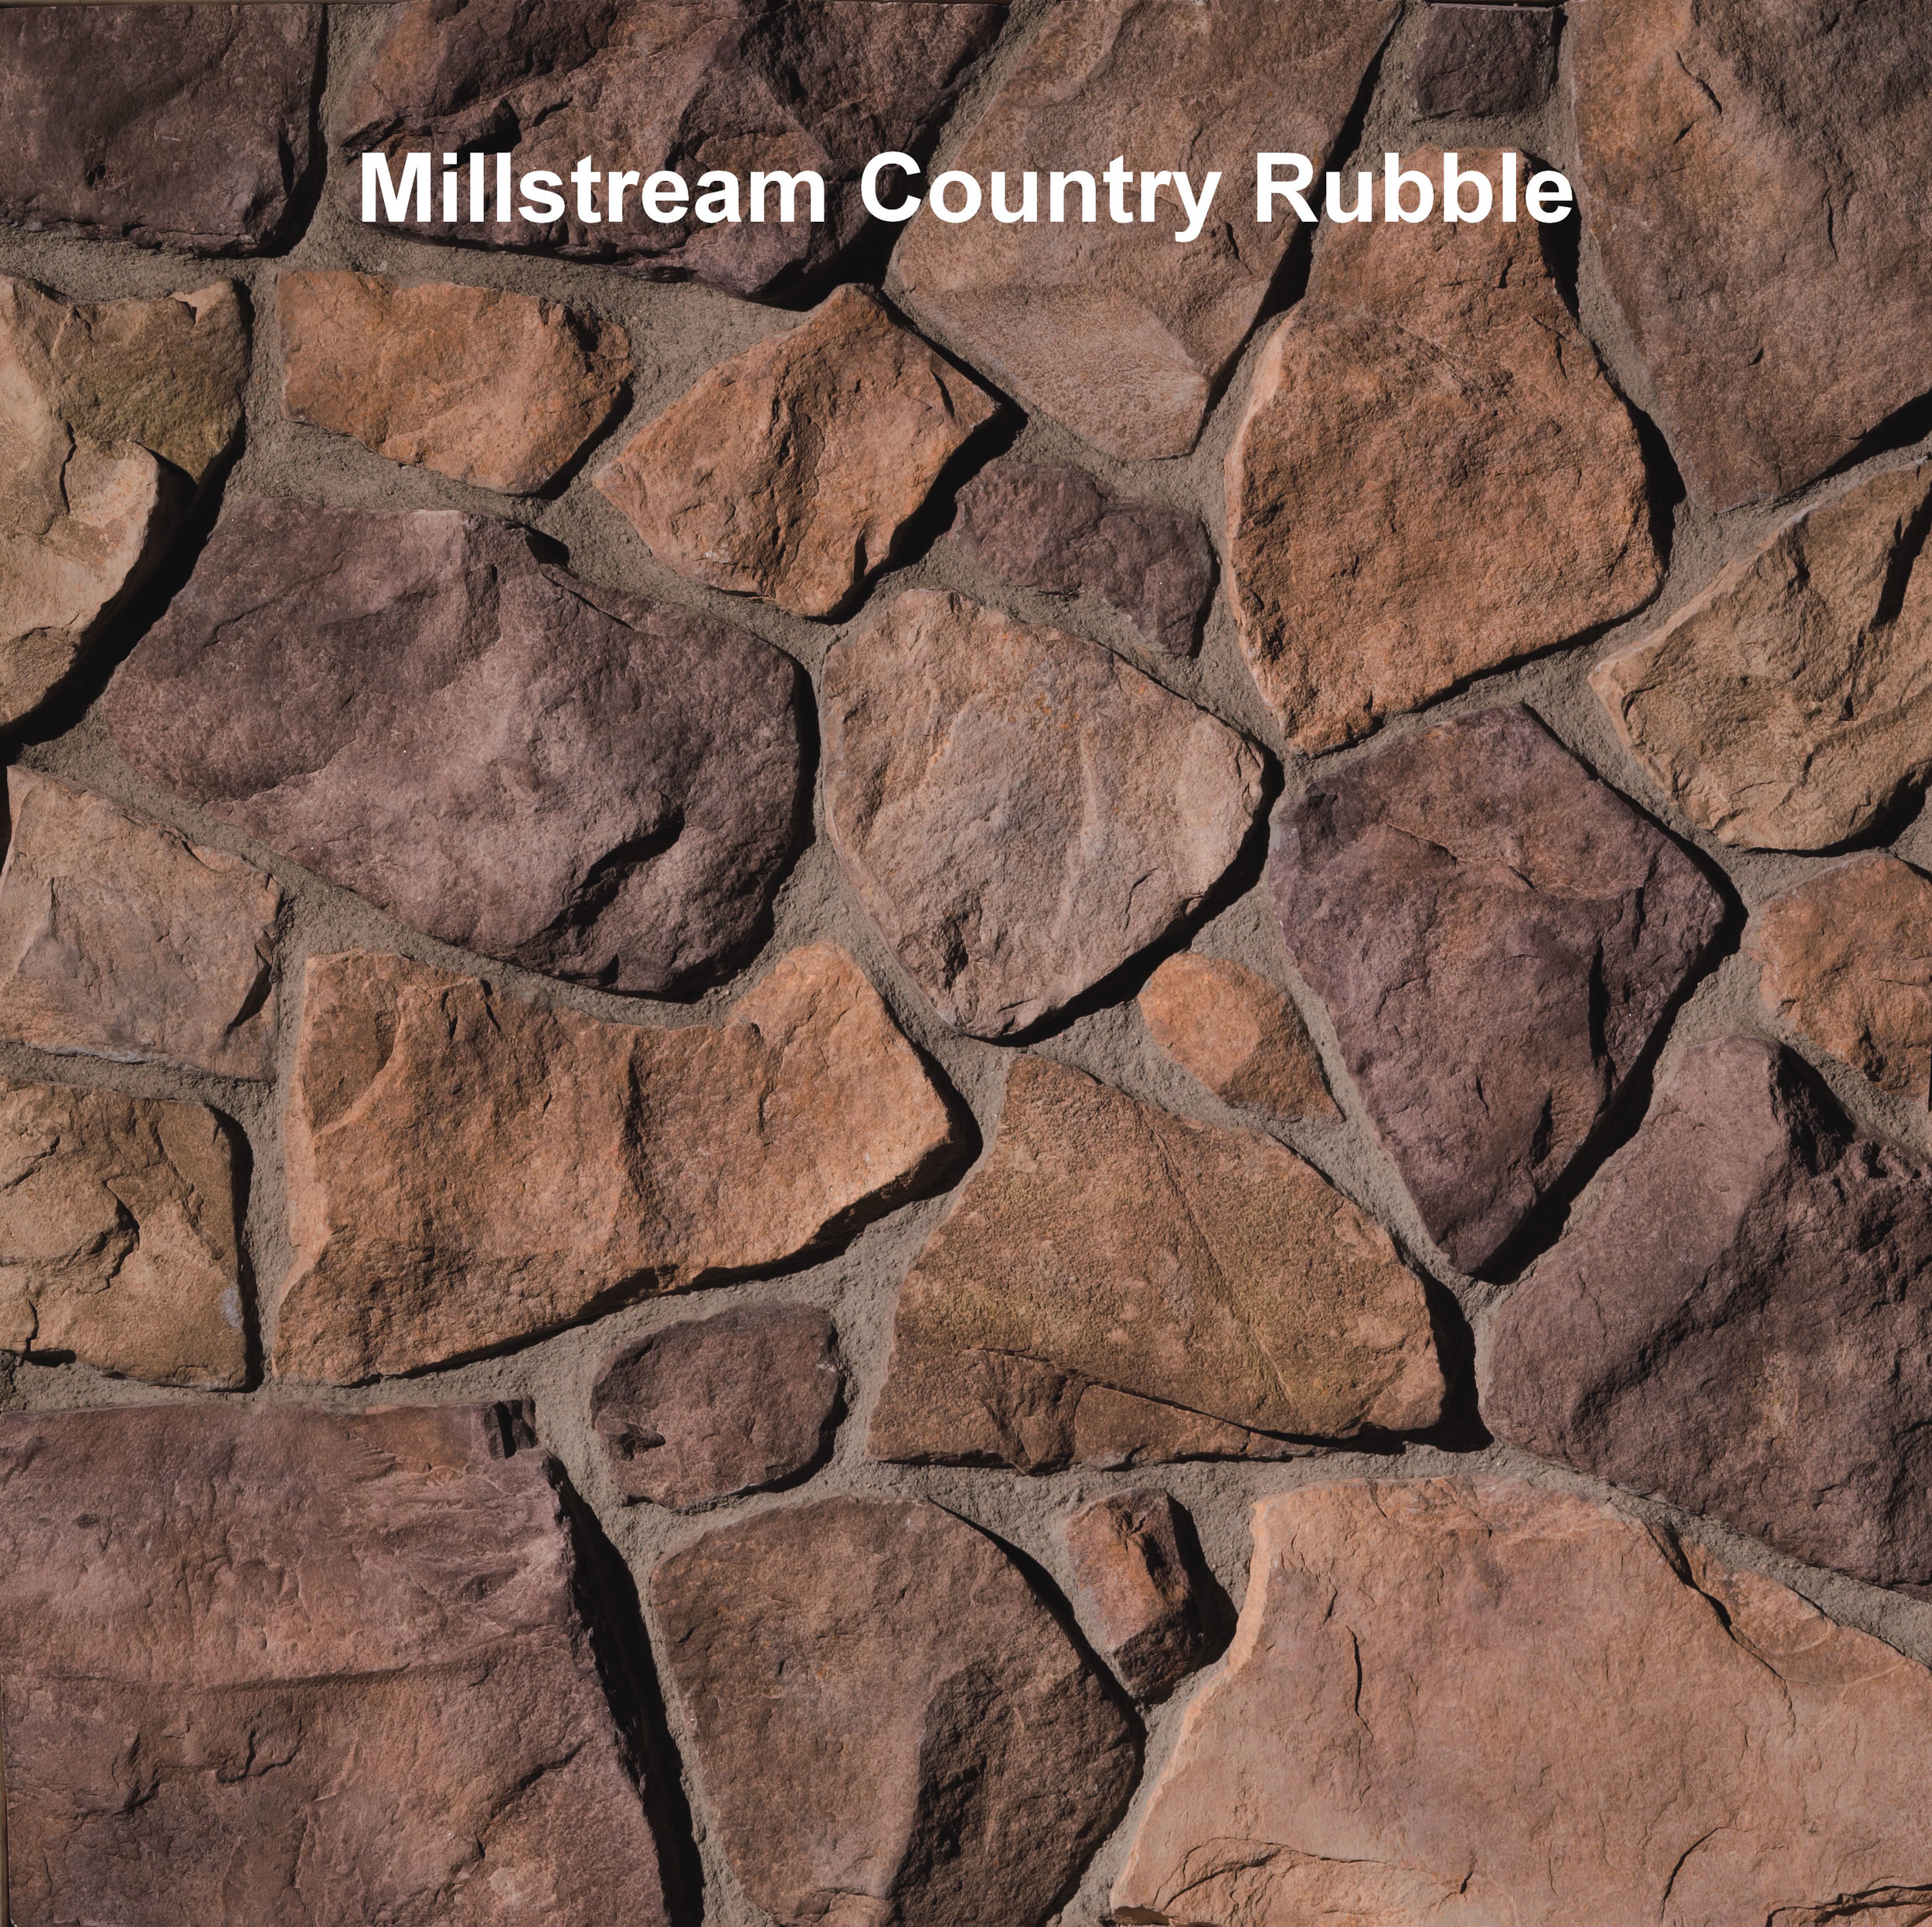 ES_Country Rubble_Millstream_profile_east.jpg